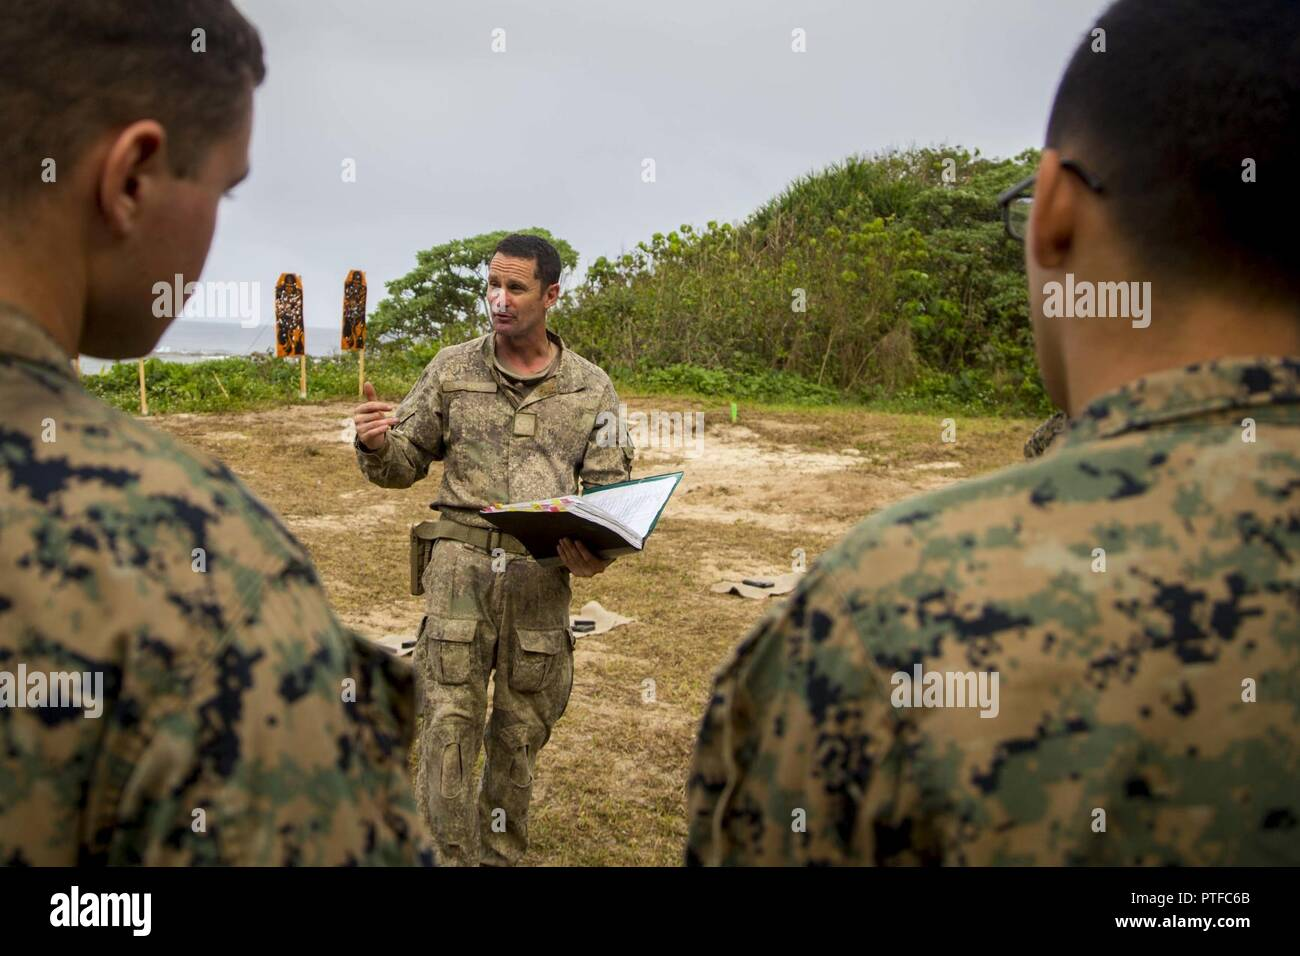 New Zealand Army Sgt. Maj. Paul Buckley, company sergeant major for delta company, explains to U.S. Marines with 3rd Battalion 4th Marines attached to Task Force Koa Moana 17, weapon safety rules prior to participating on a live fire range during Exercise TAFAKULA, on Tongatapu Island, Tonga, July 21, 2017. Exercise TAFAKULA is designed to strengthen the military-to-military, and community relations between Tonga's His Majesty's Armed Forces, French Army of New Caledonia, New Zealand Defense Force, and the United States Armed Forces. Stock Photo